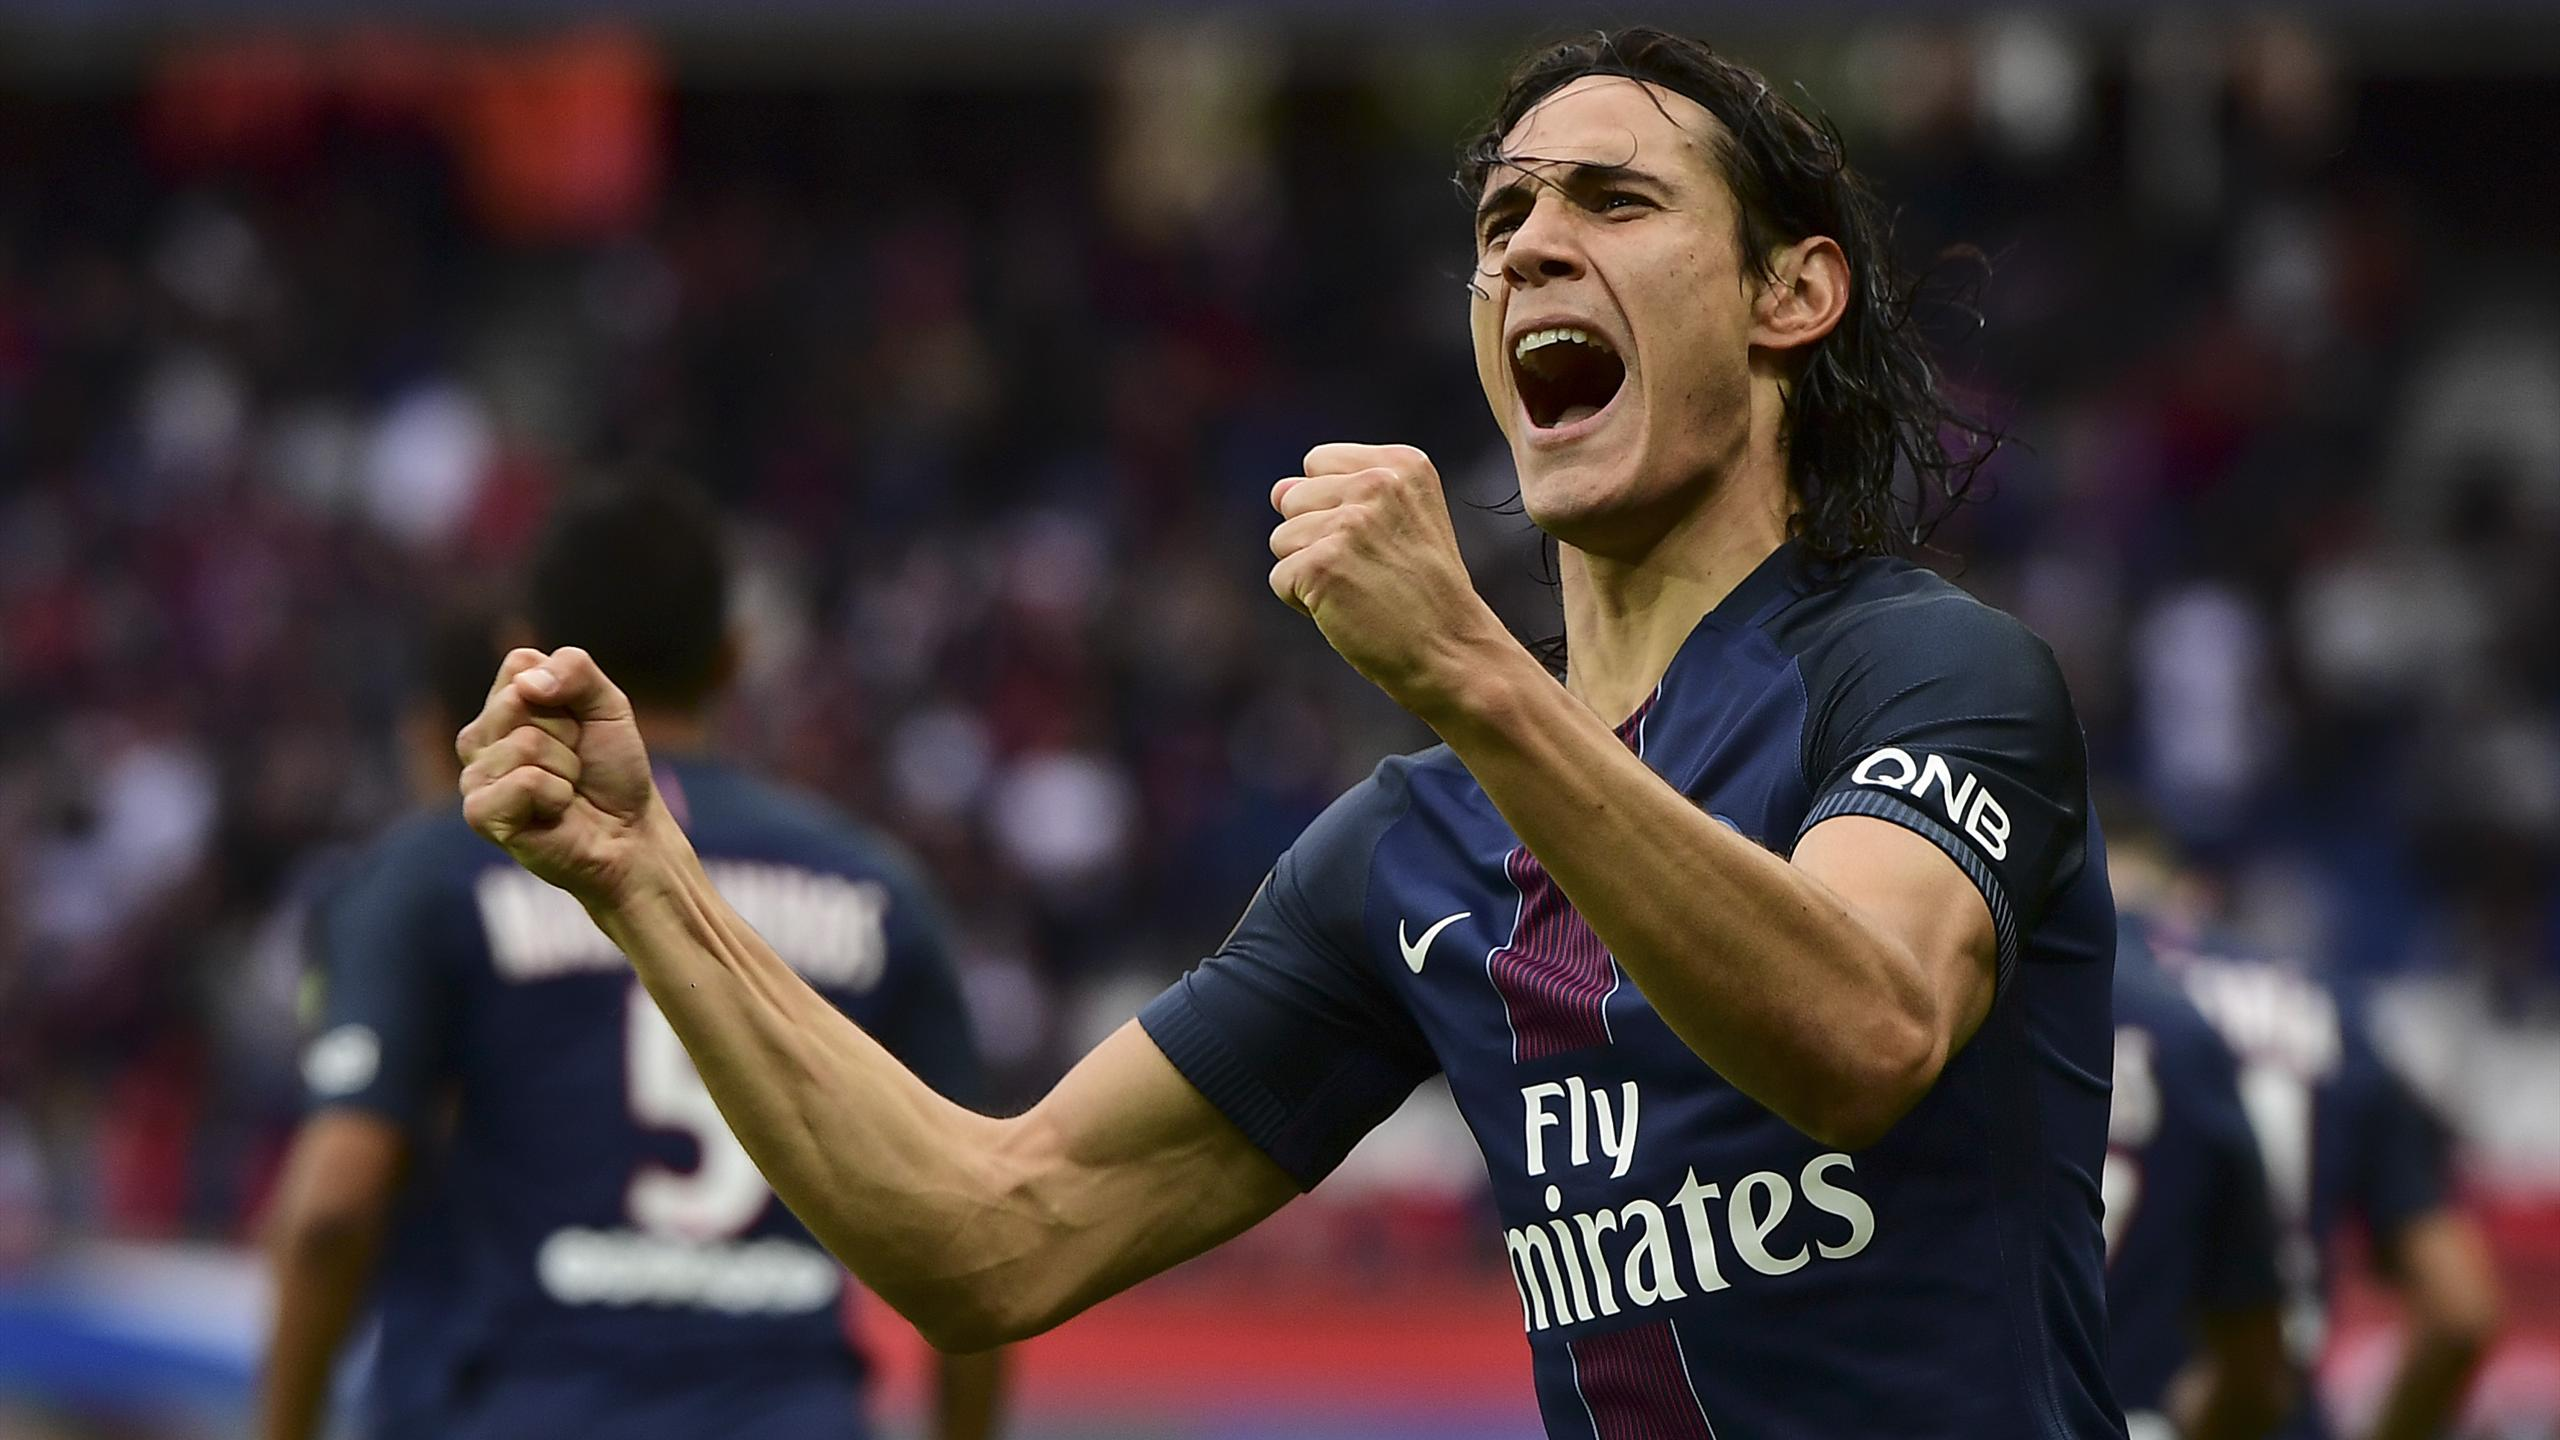 Paris Saint-Germain's Uruguayan forward Edinson Cavani celebrates his goal during the French L1 football match between Paris Saint-Germain and Bordeaux